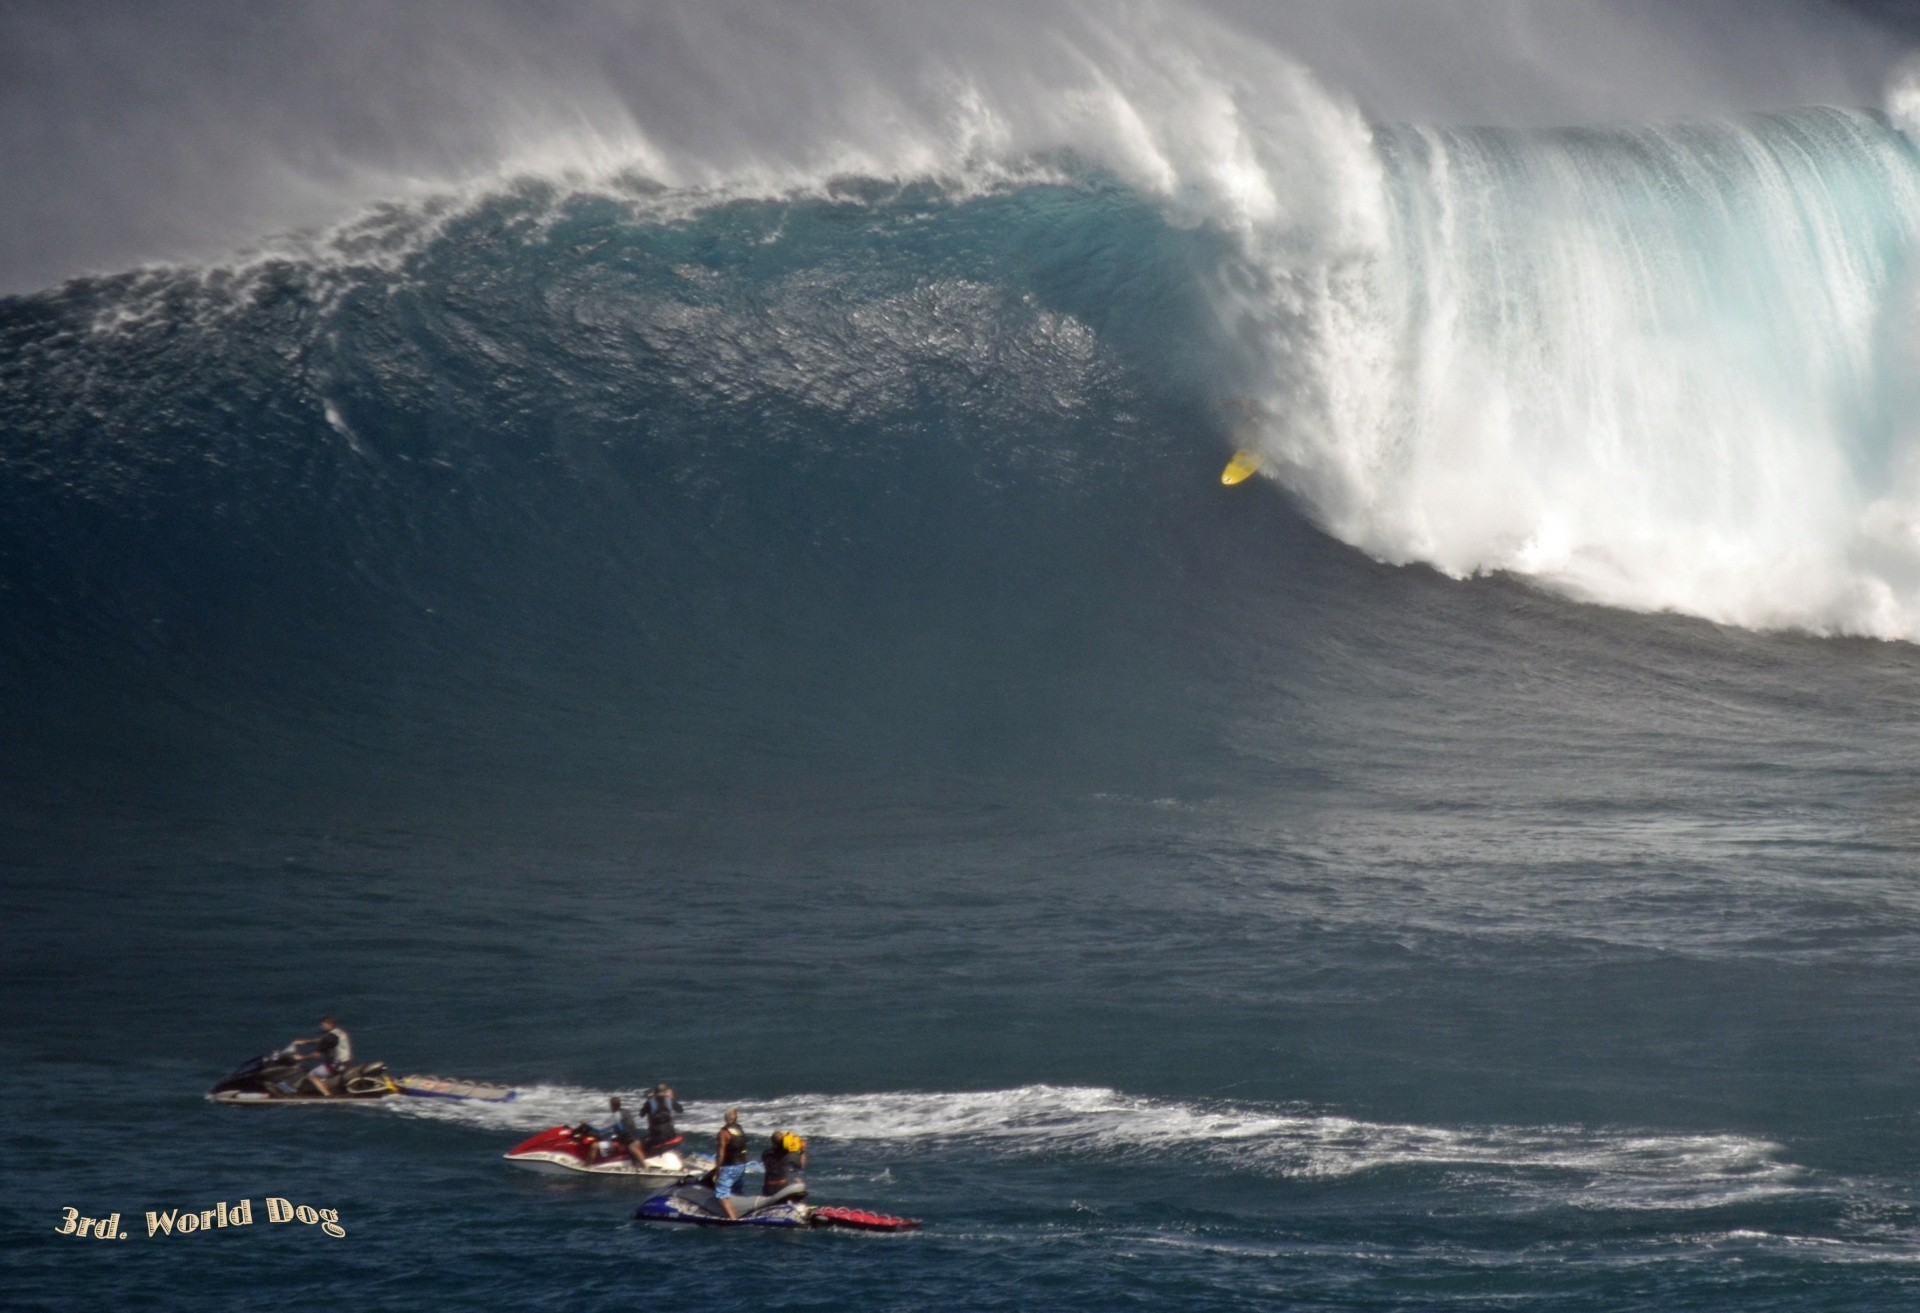 3rd World Dog's photo of Peahi - Jaws